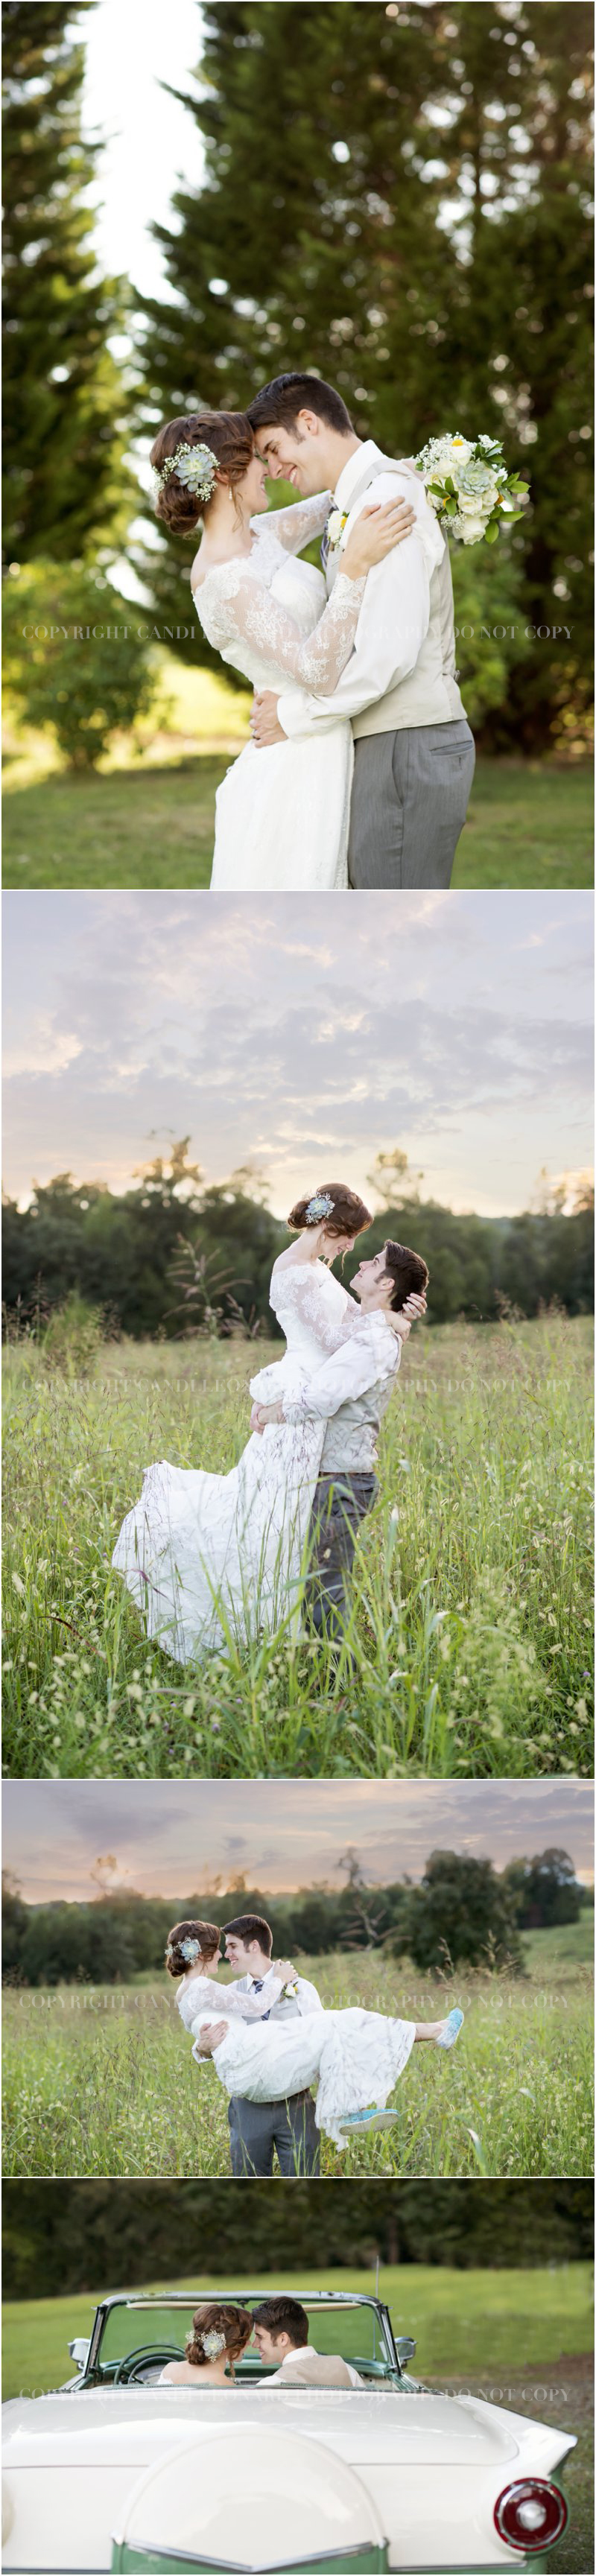 ASHEBORO_NC_wedding_photographer_0967